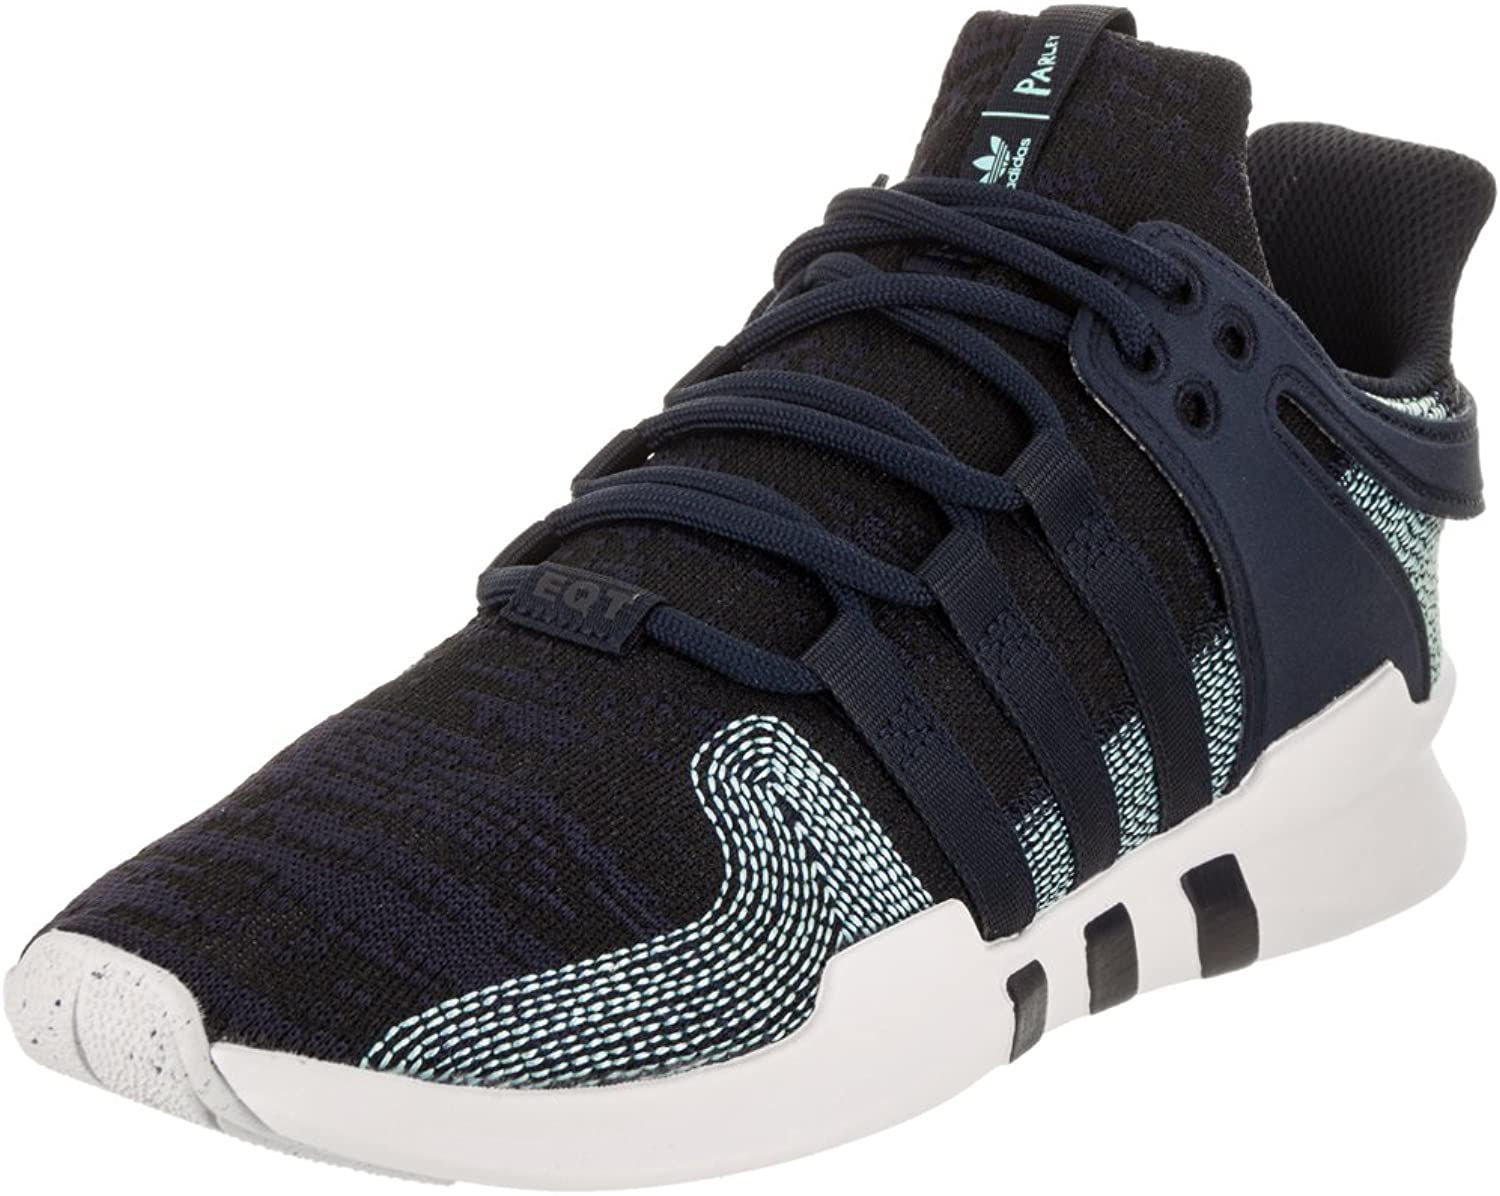 Adidas Men's EQT Support Adv CK Parley Running shoes